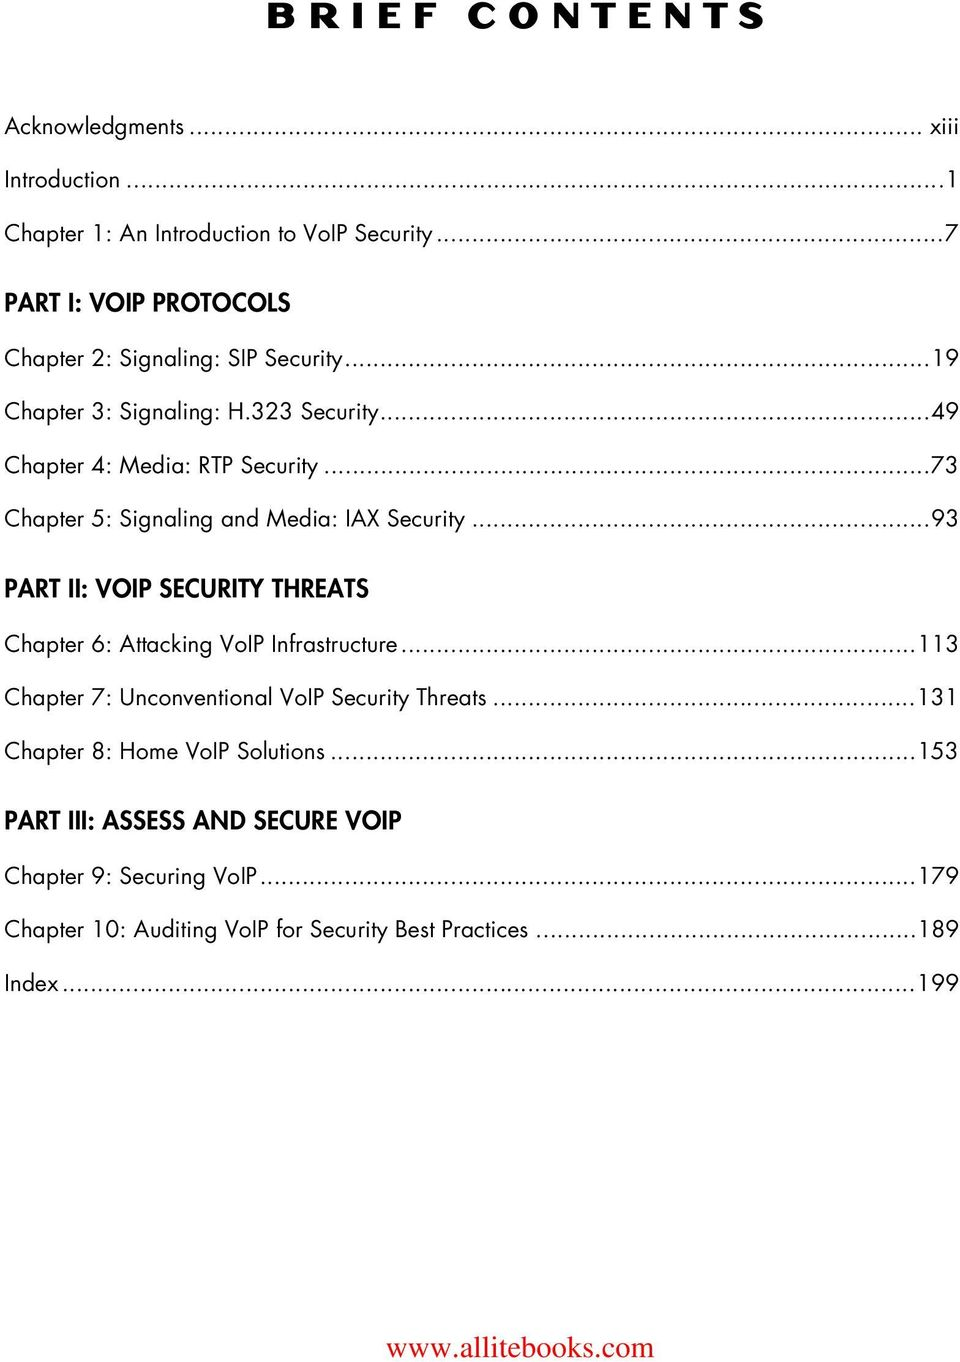 ..73 Chapter 5: Signaling and Media: IAX Security...93 PART II: VOIP SECURITY THREATS Chapter 6: Attacking VoIP Infrastructure.